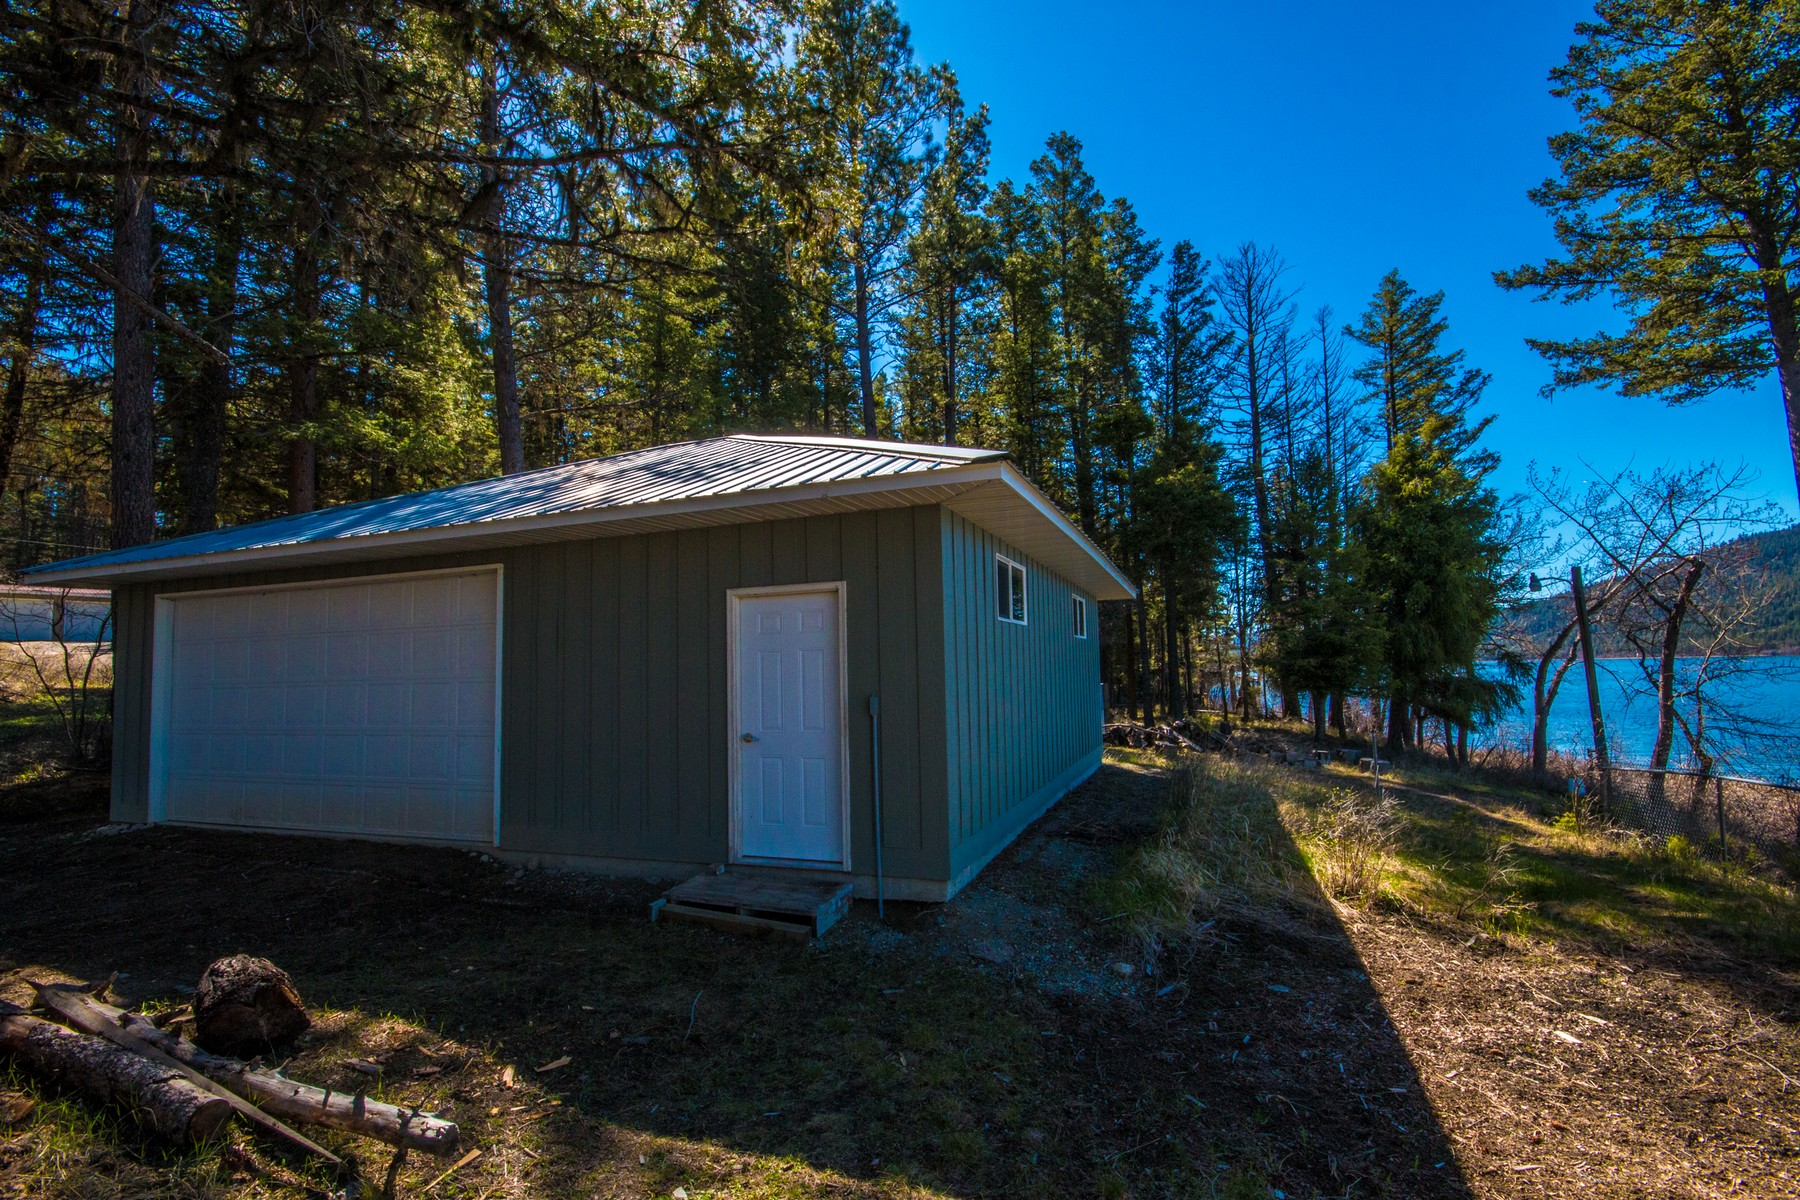 Additional photo for property listing at 19491 Sahinen Ln , Proctor, MT 59929 19491  Sahinen Ln Proctor, Montana 59929 United States